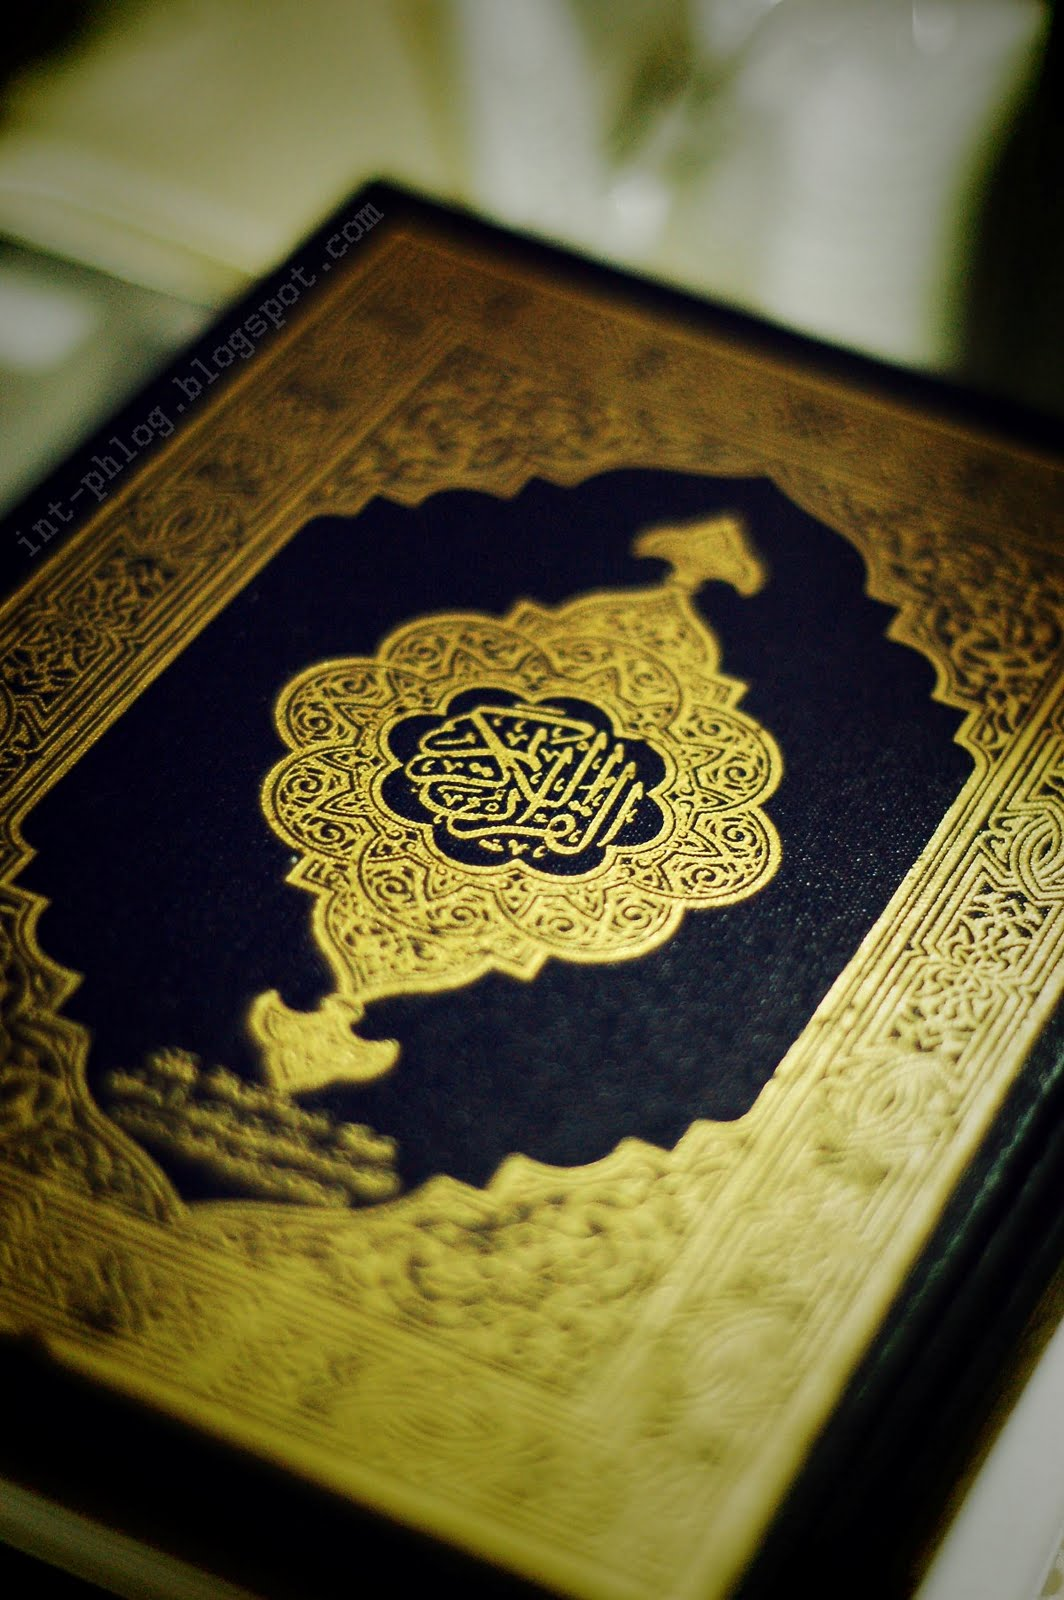 Copy of the Qur'an